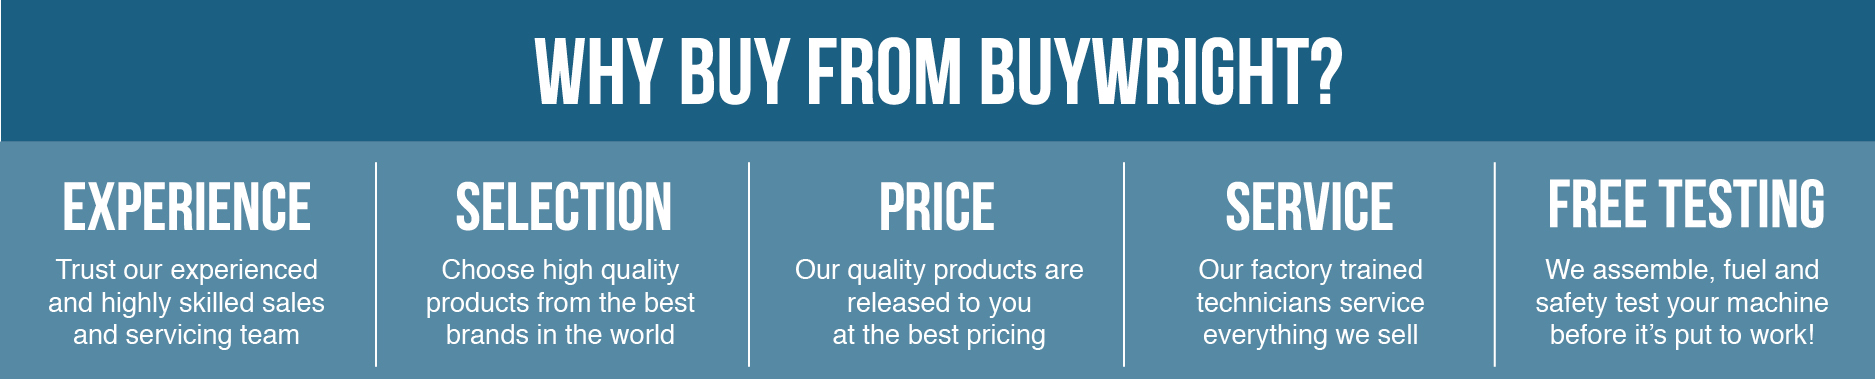 Why Buy From Buywright.co.nz